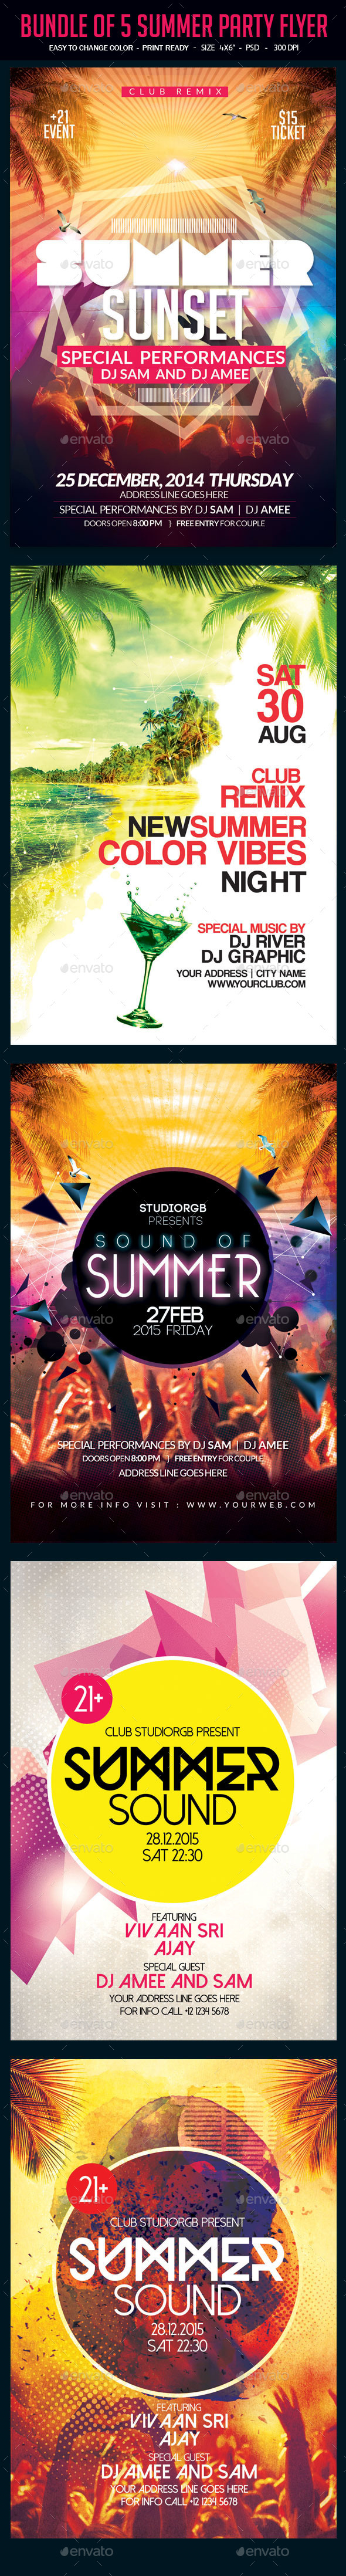 Bundle of 5 Summer Party Flyer - Clubs & Parties Events